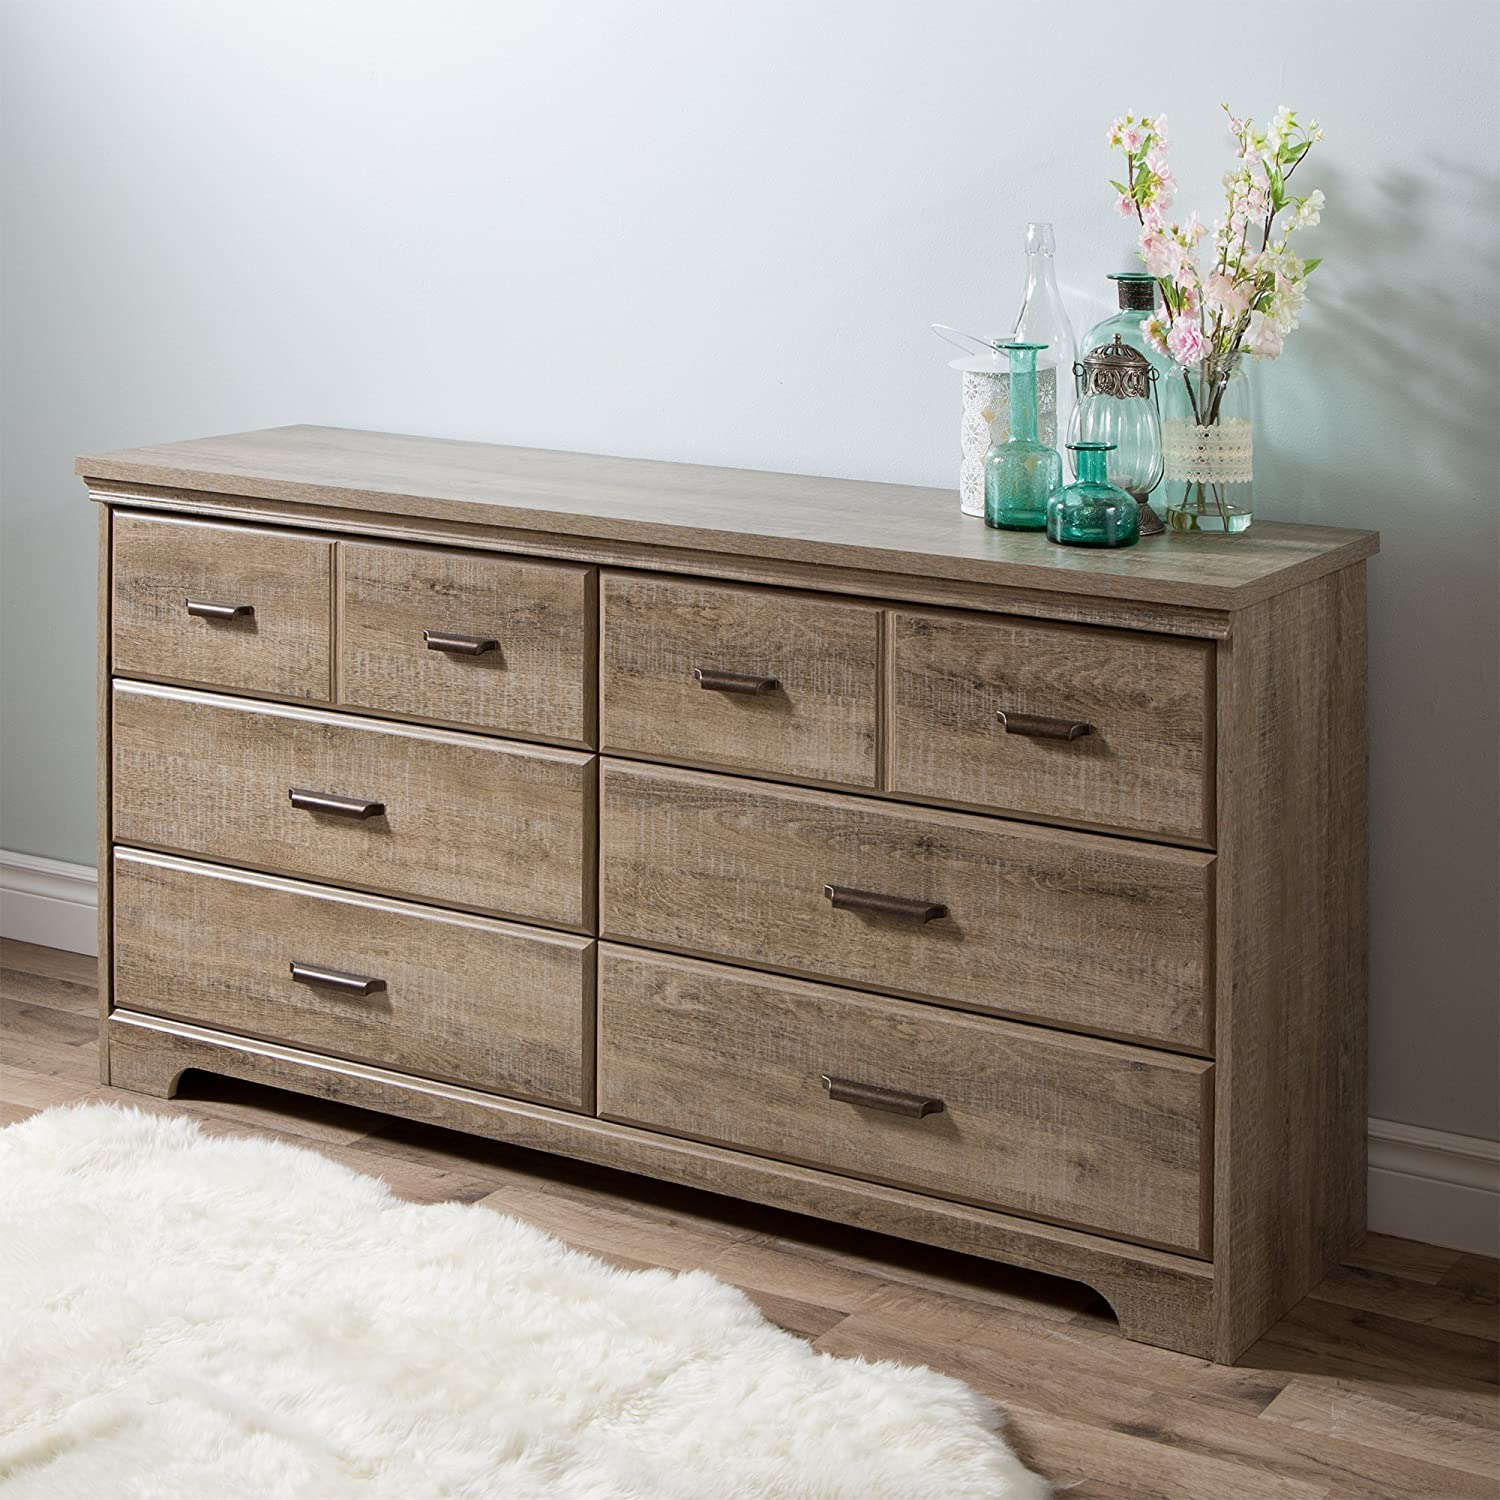 Amazon South Shore Versa 6 Drawer Double Dresser for Bedrooms